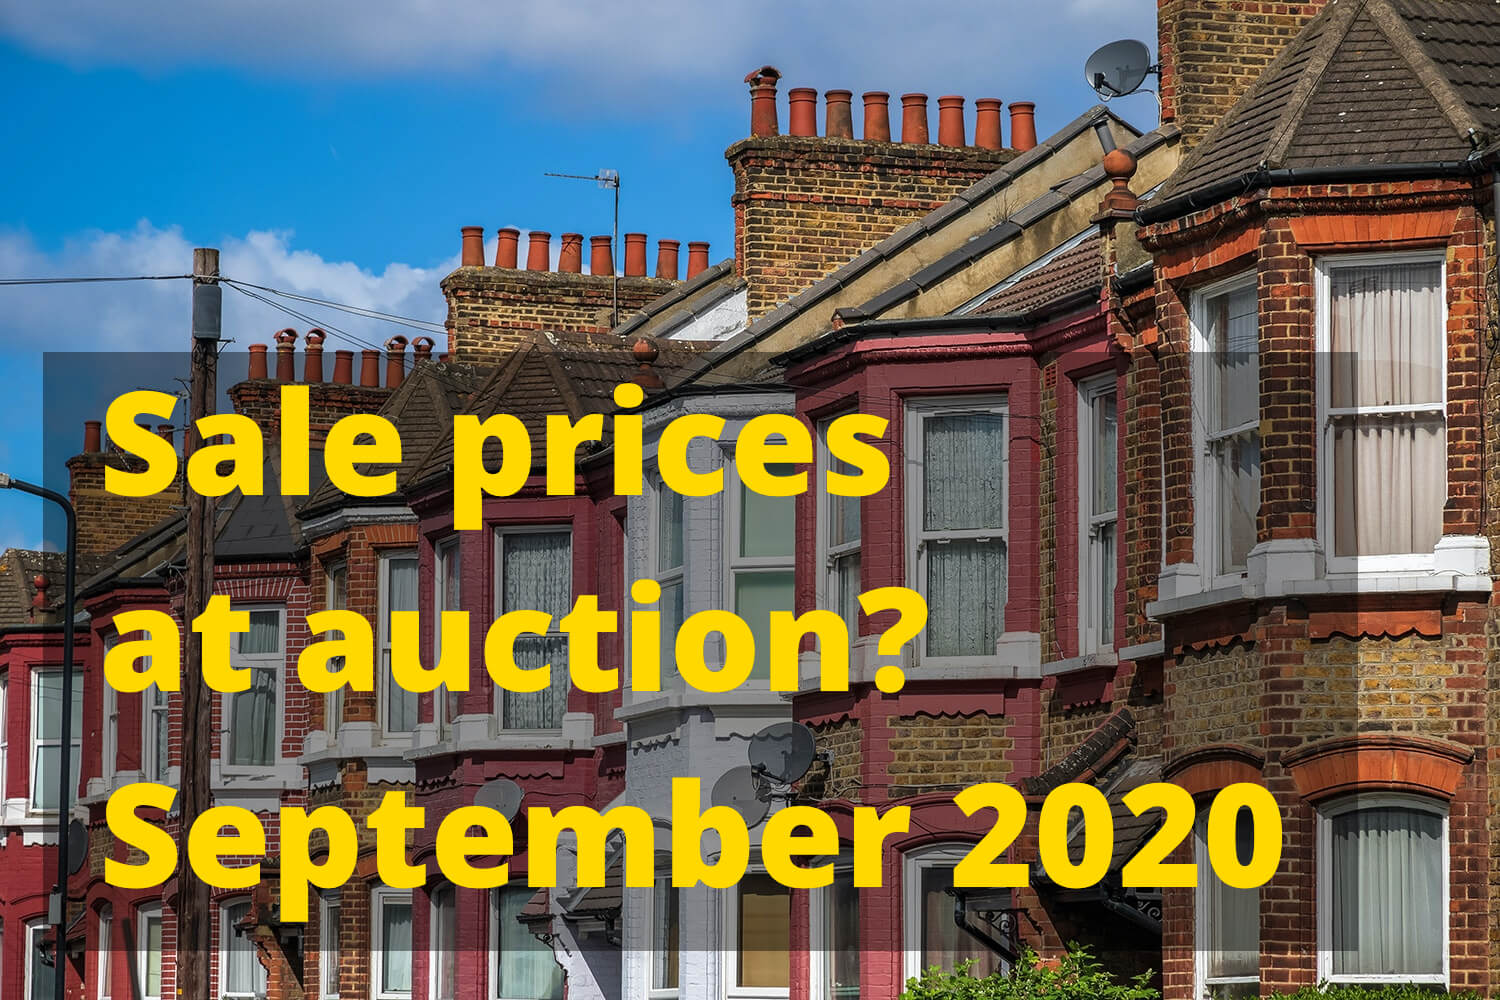 Sale prices at auction - September 2020